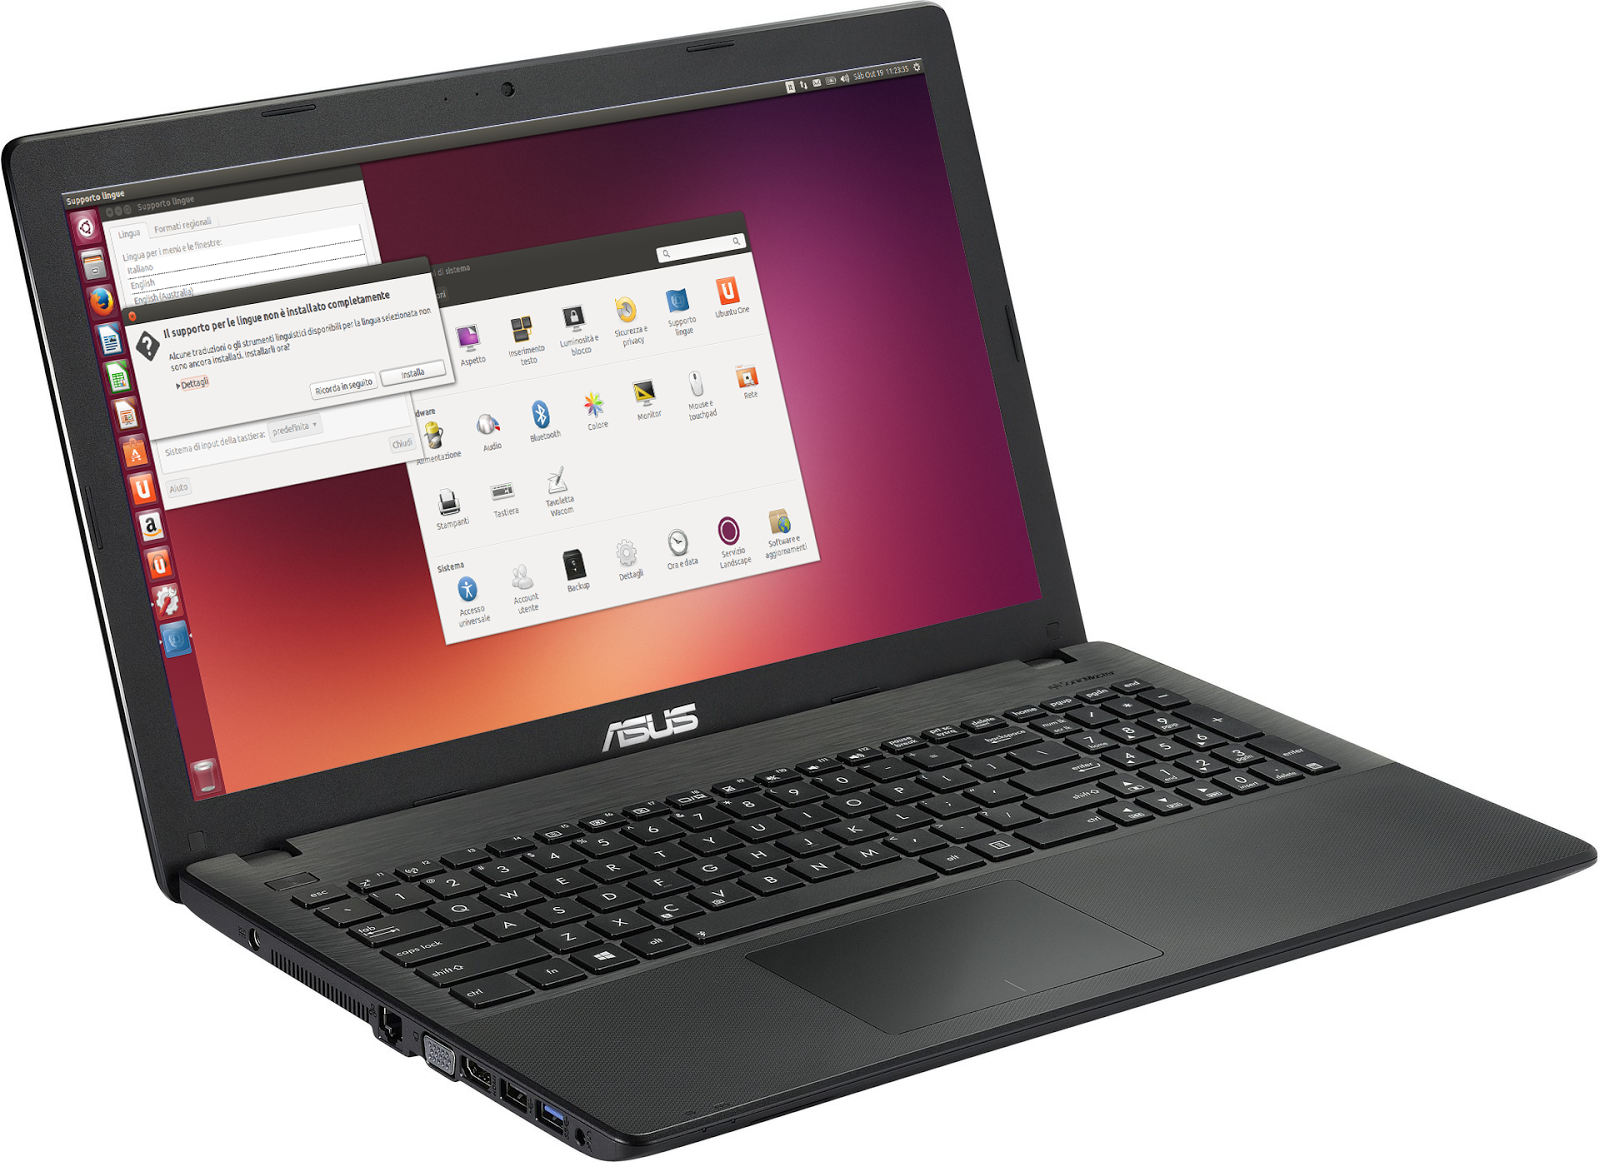 Asus S200e Drivers Windows 7 Download